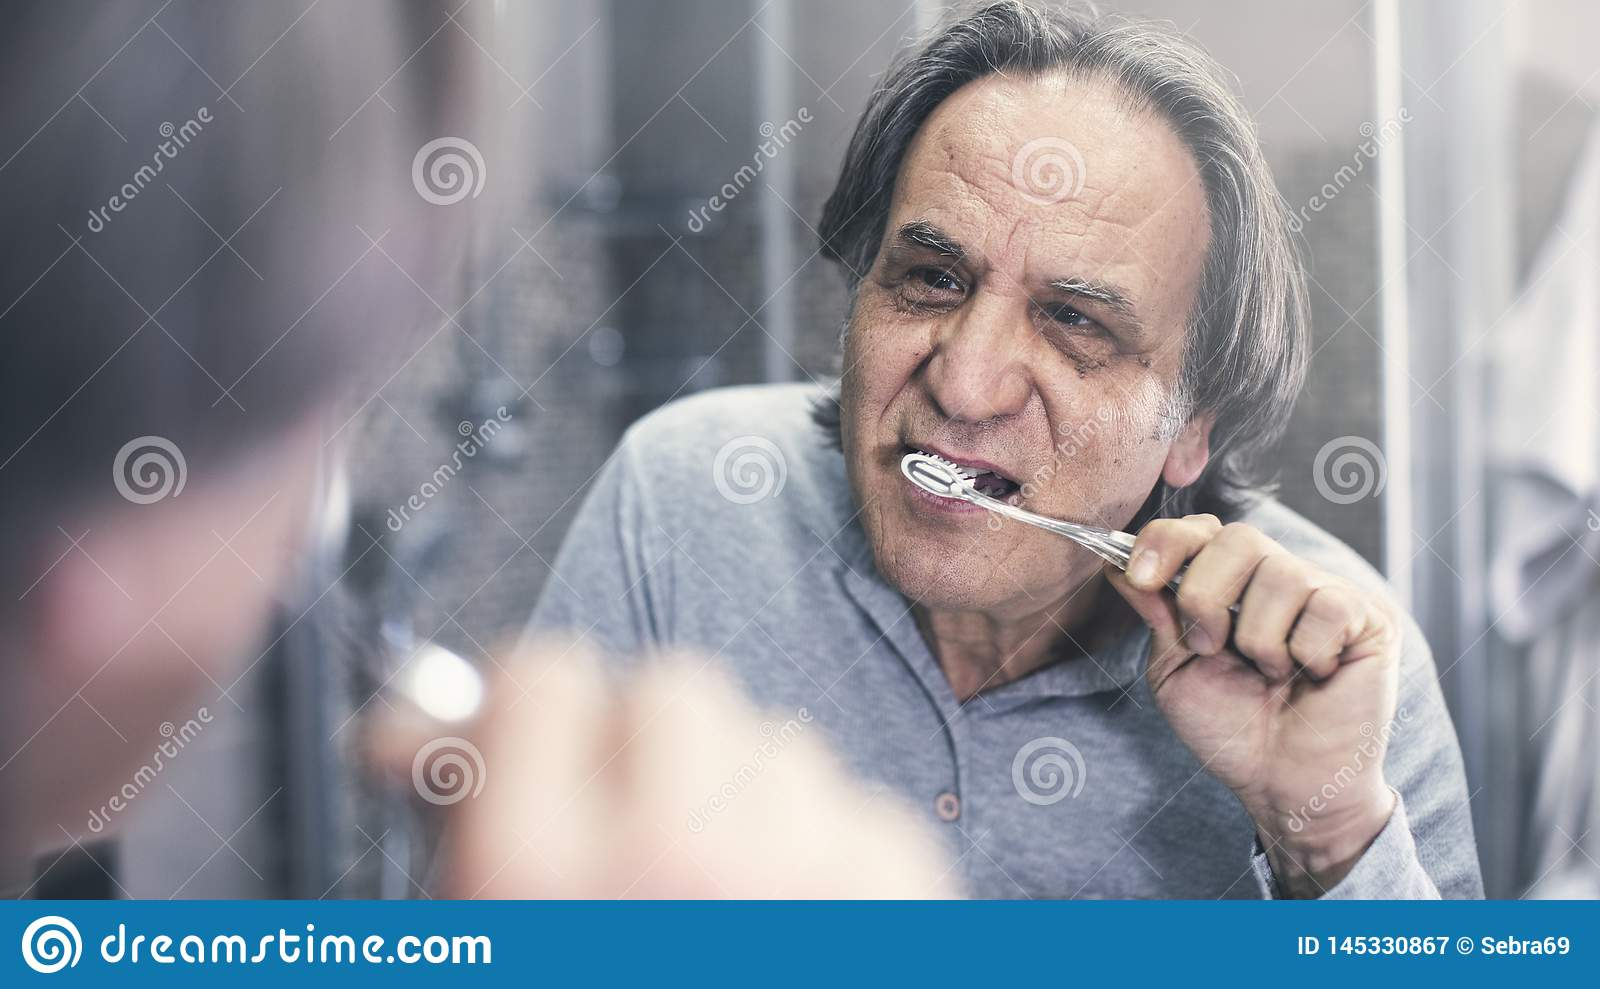 Old man brushing teeth in front of the mirror